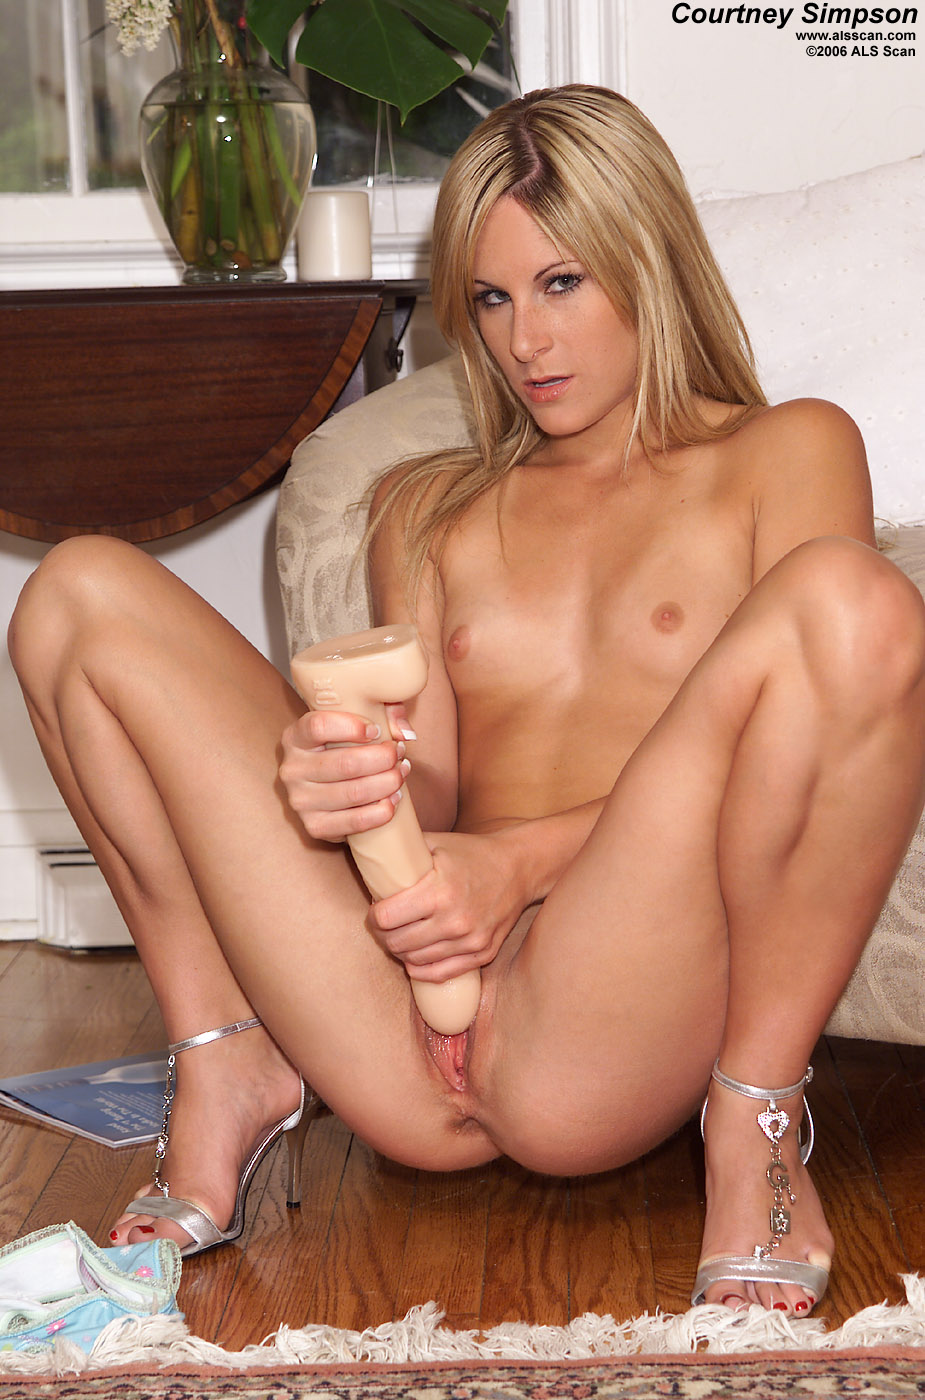 courtney simpson pussy